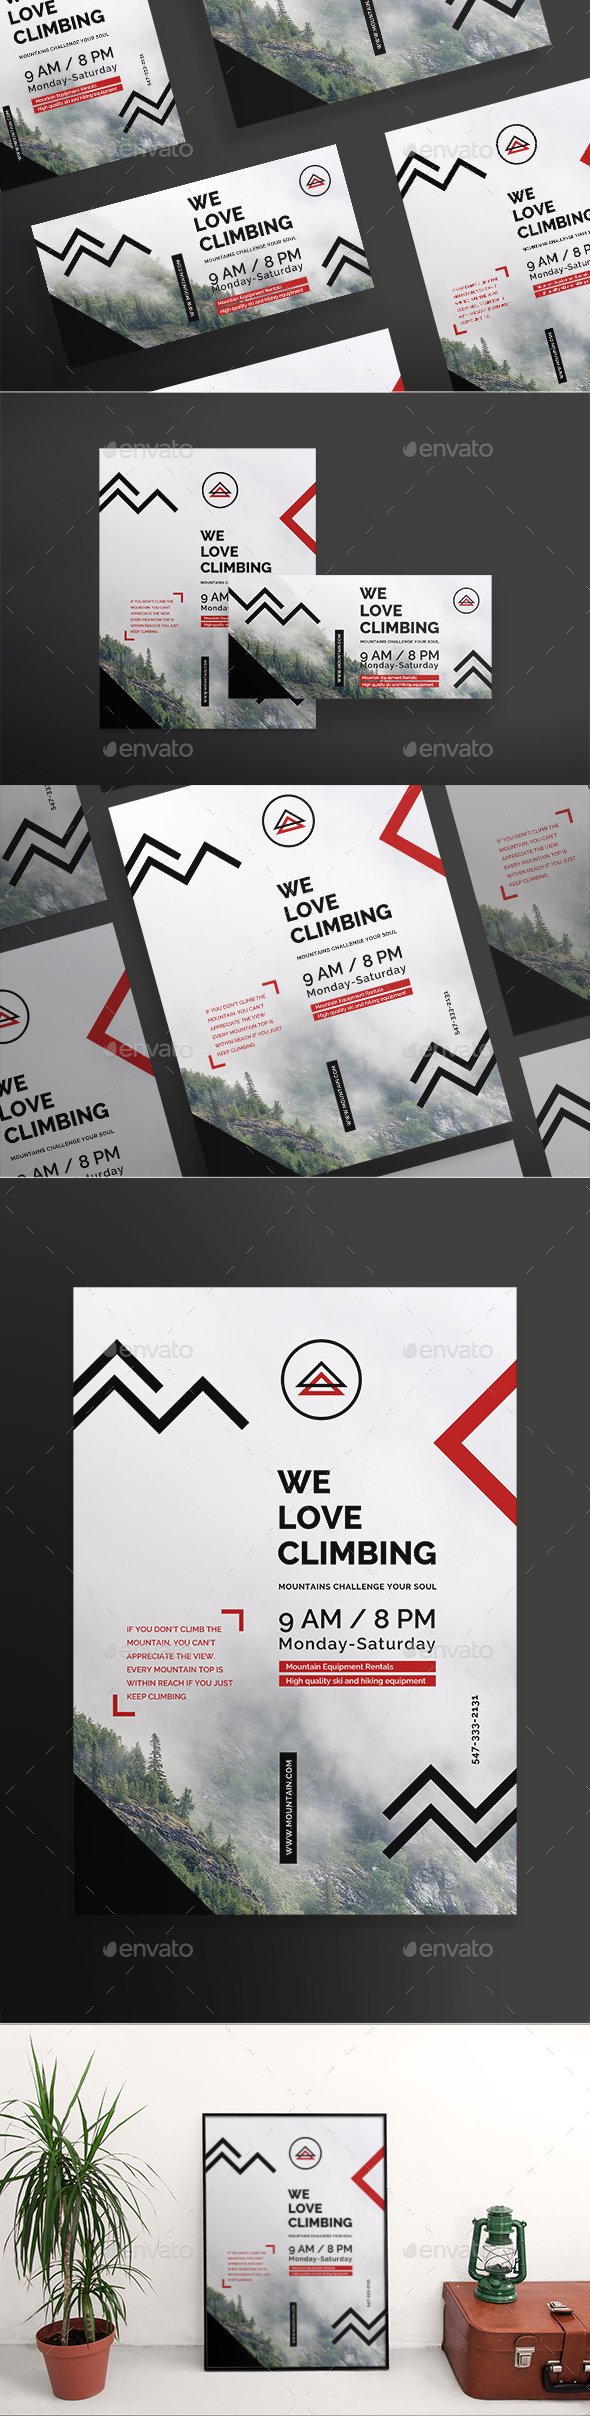 Climbing Flyers - Sports Events